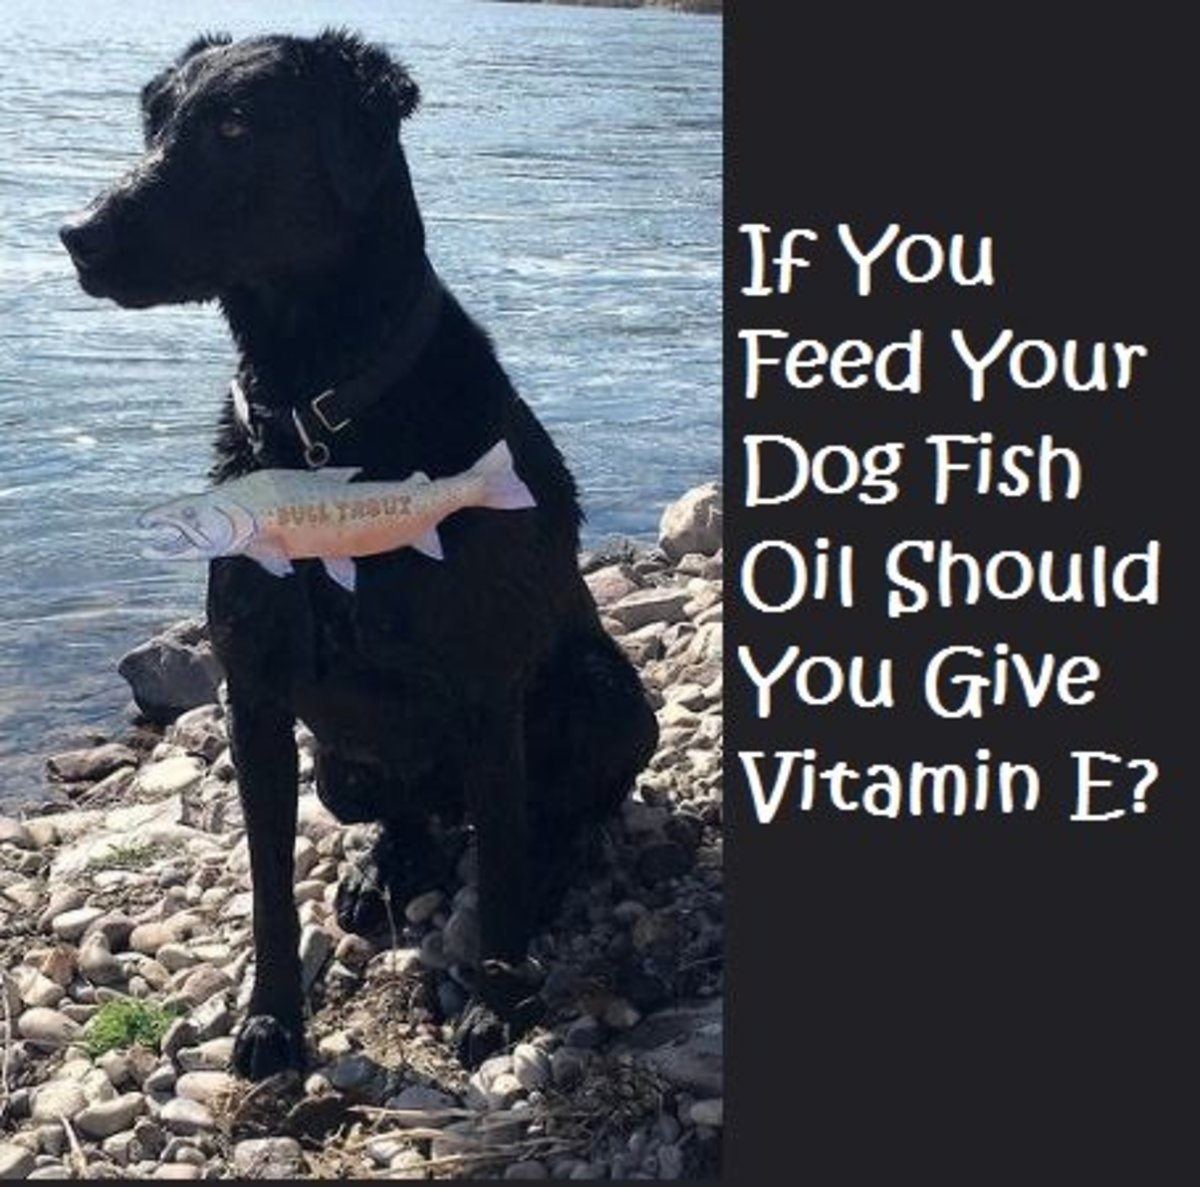 If You Feed Your Dog Fish Oil, Should You Also Give Vitamin E?